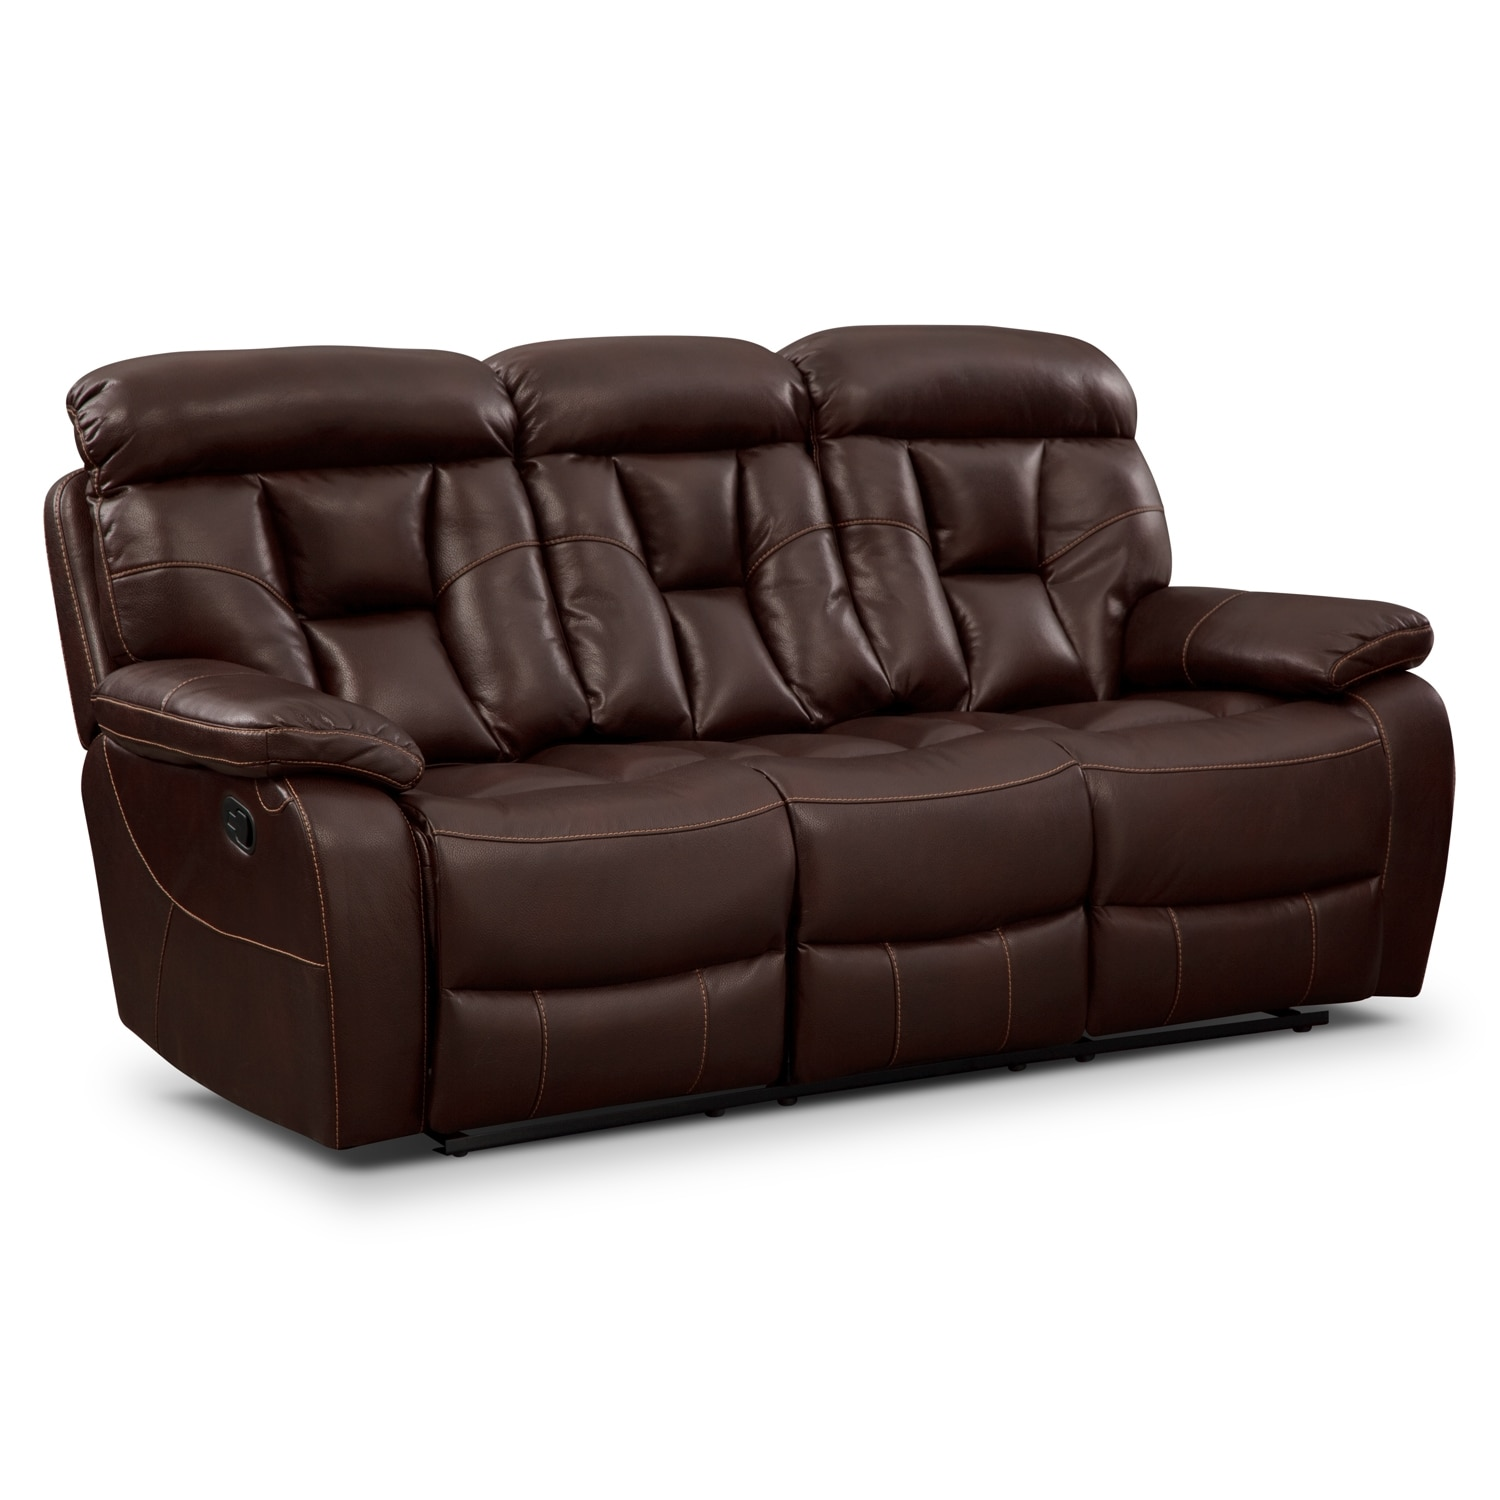 Dakota reclining sofa java american signature furniture for Furniture furniture